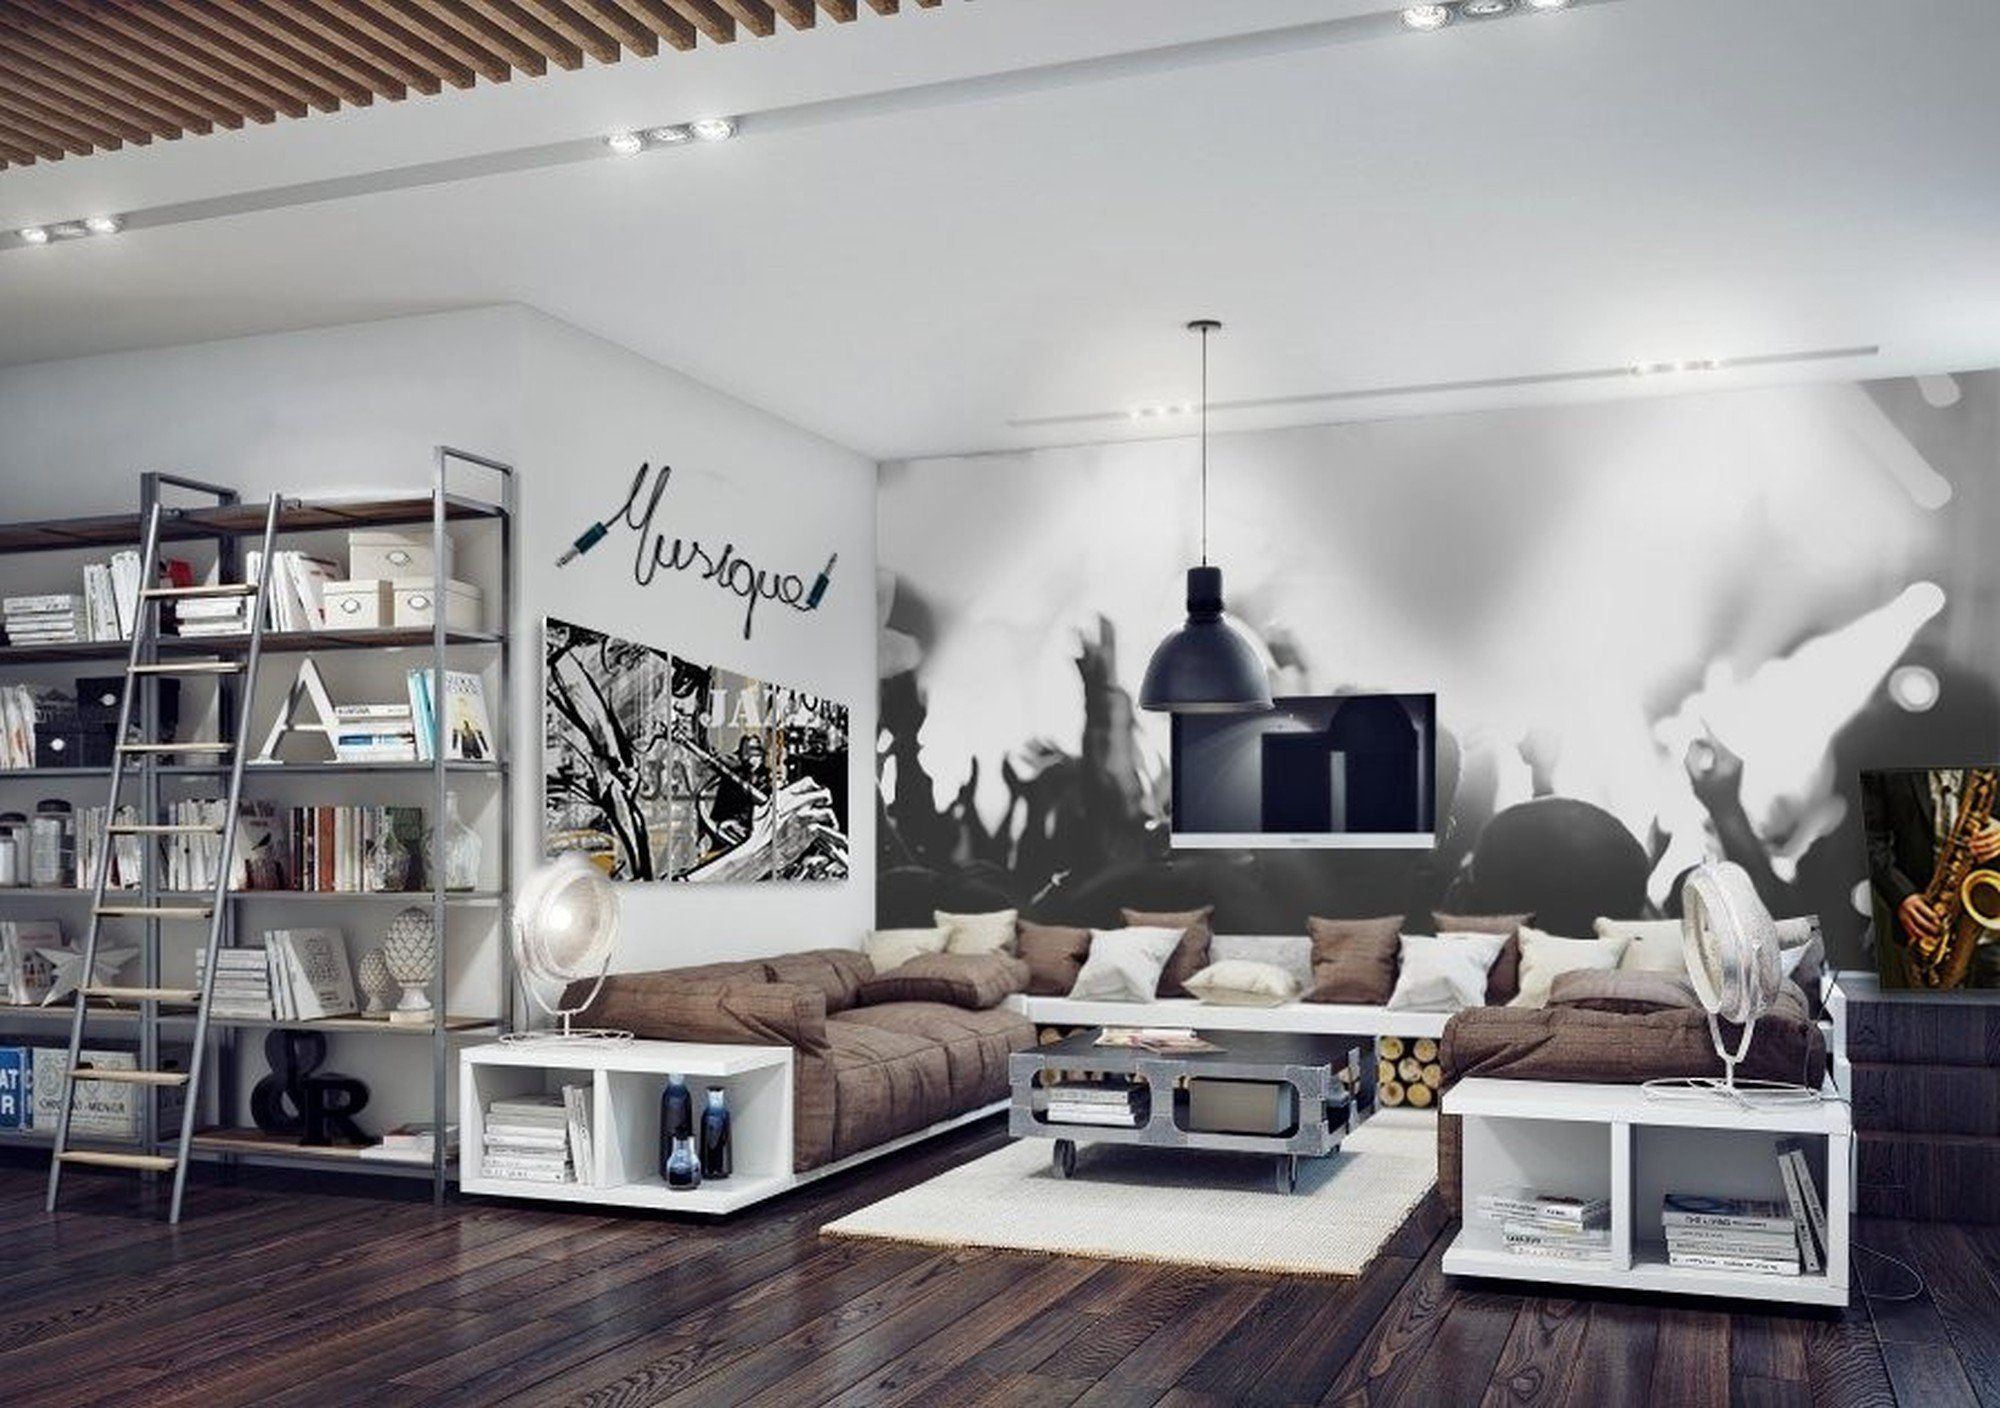 Pin by Abdurhman Meshy on 418 | Pinterest | Industrial living rooms ...